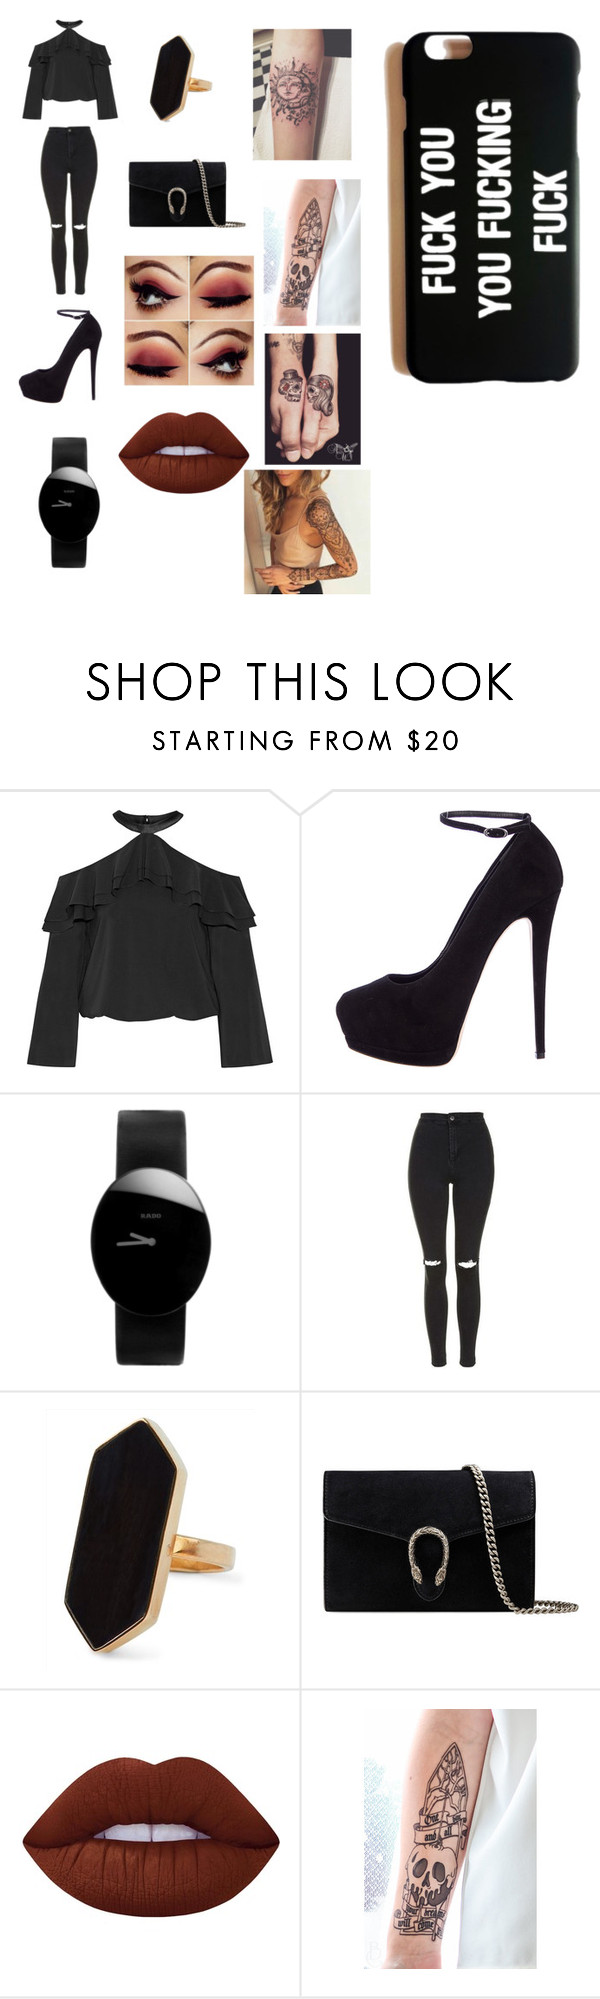 """""""noelle"""" by evanspam on Polyvore featuring Alice + Olivia, Giuseppe Zanotti, Rado, Topshop, Jaeger, Gucci and Lime Crime"""